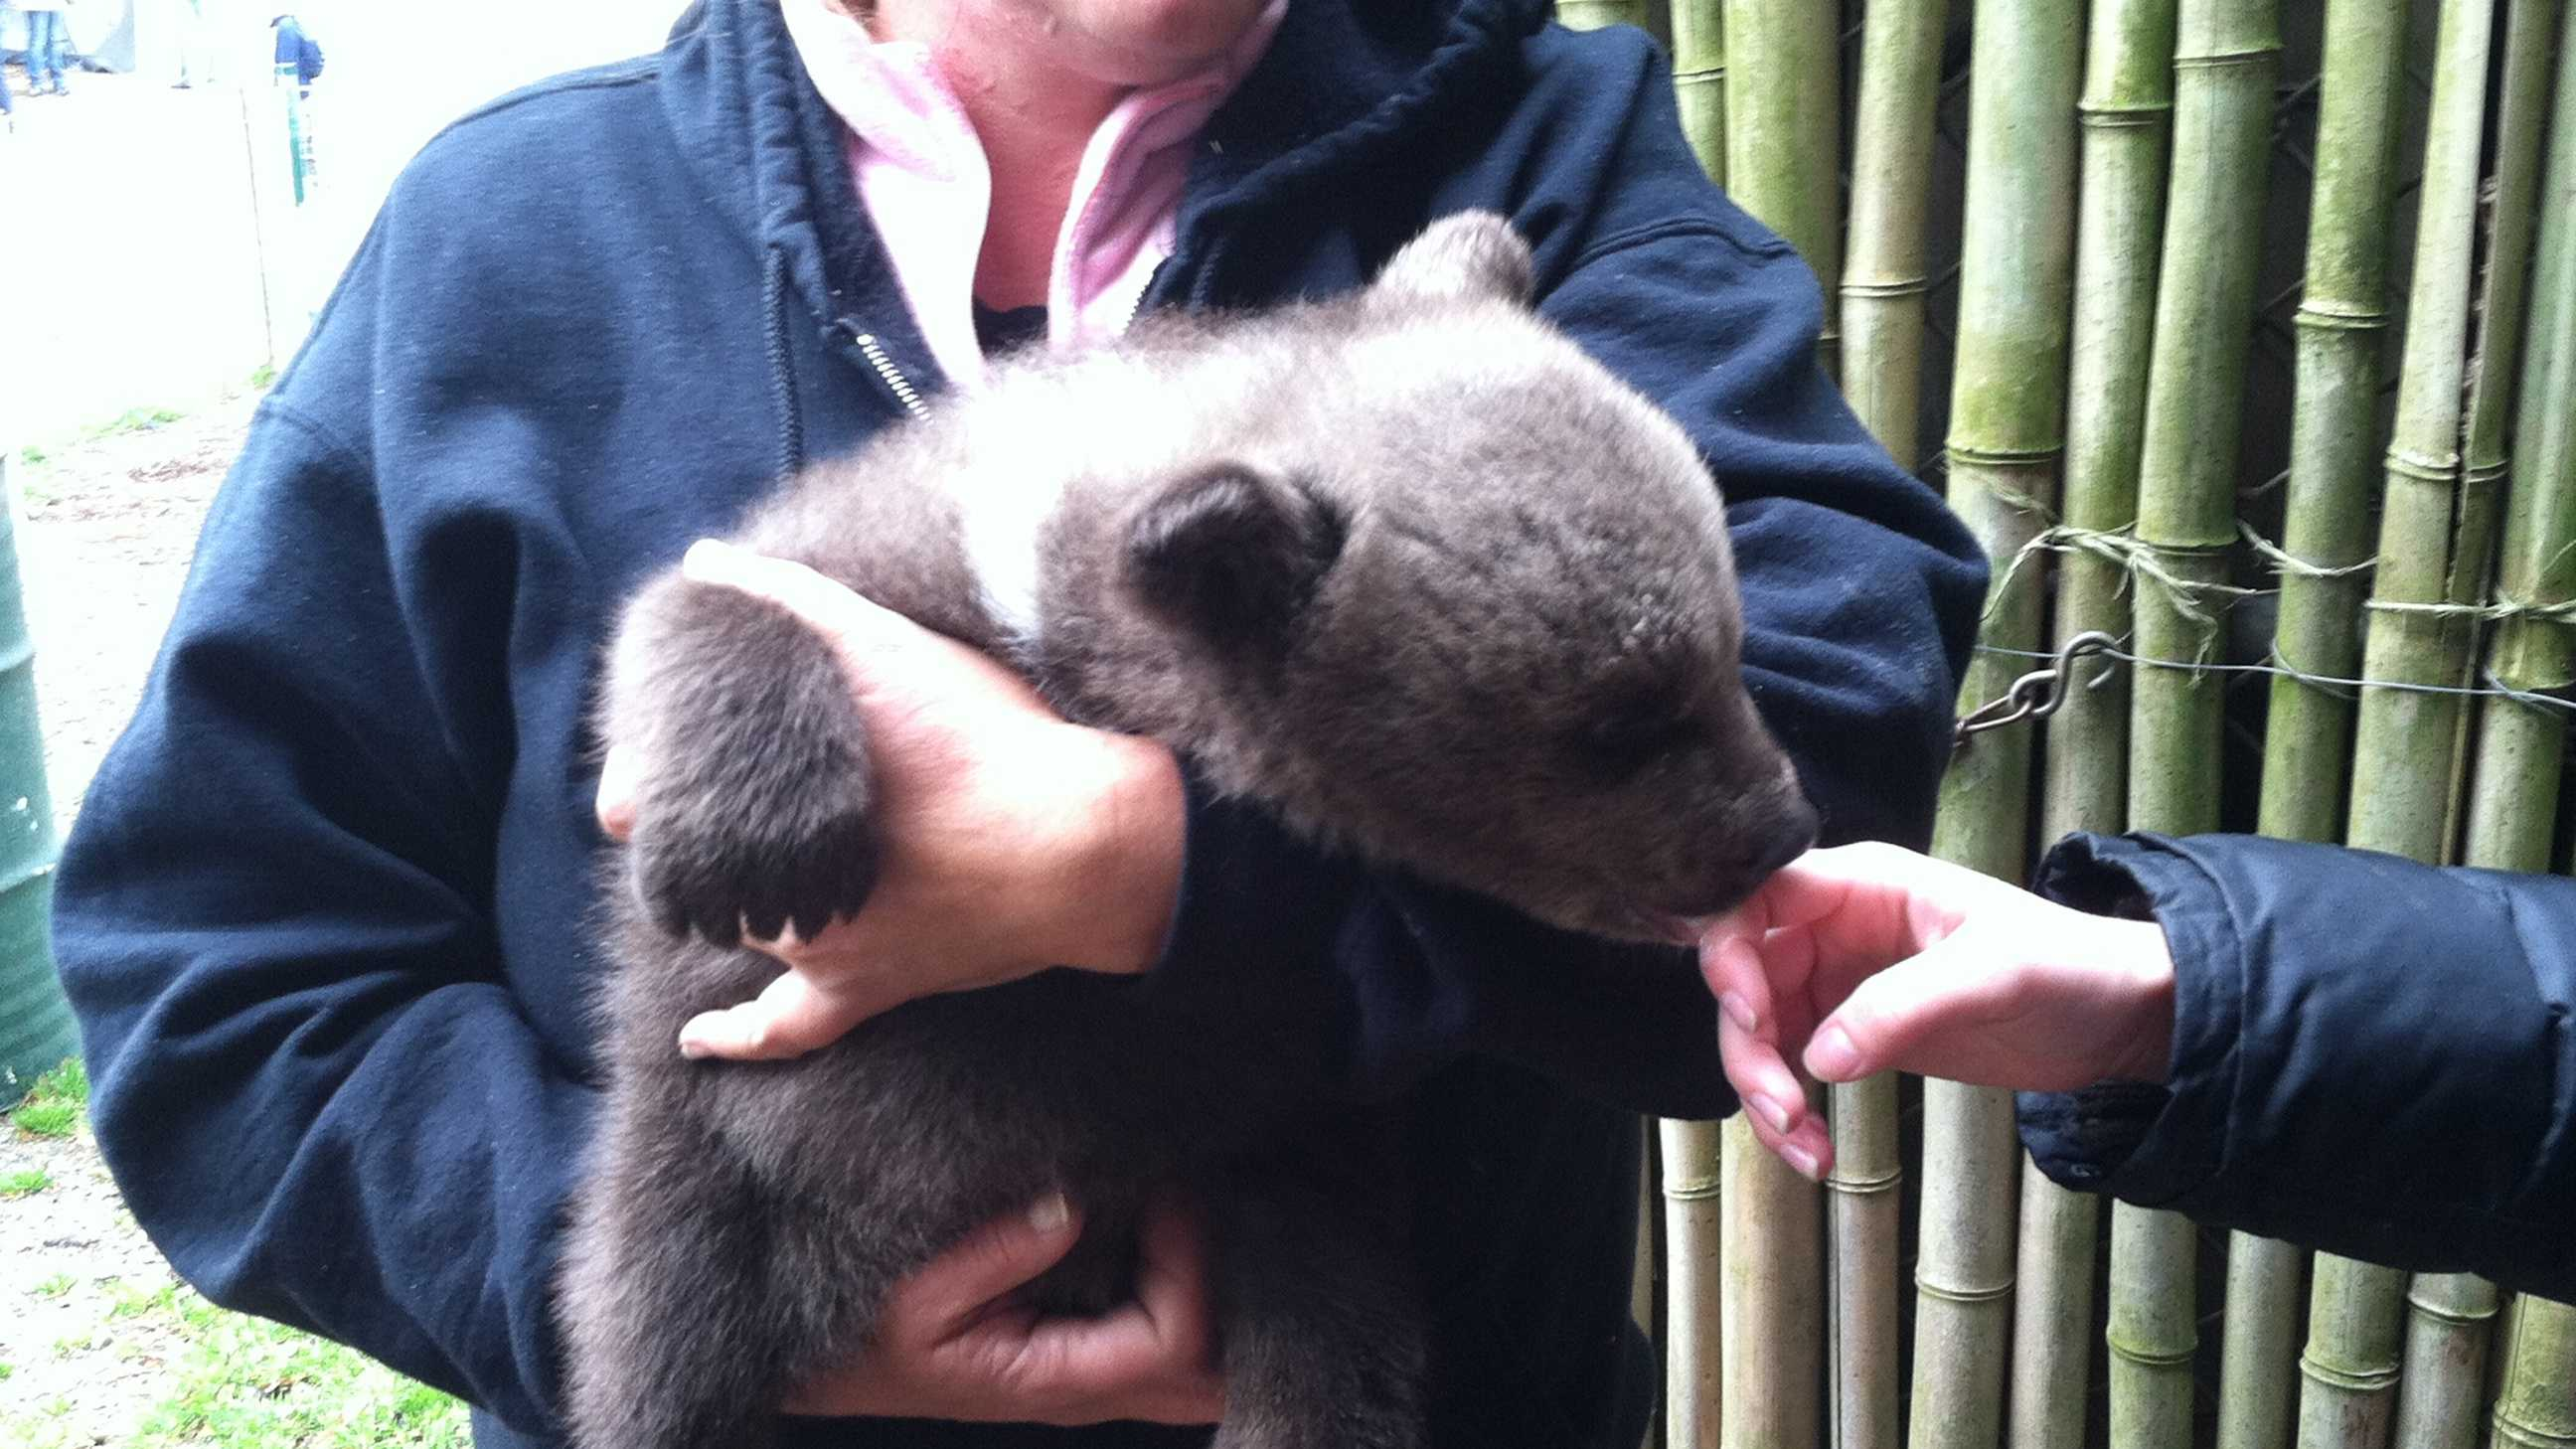 Hollywild bear cub